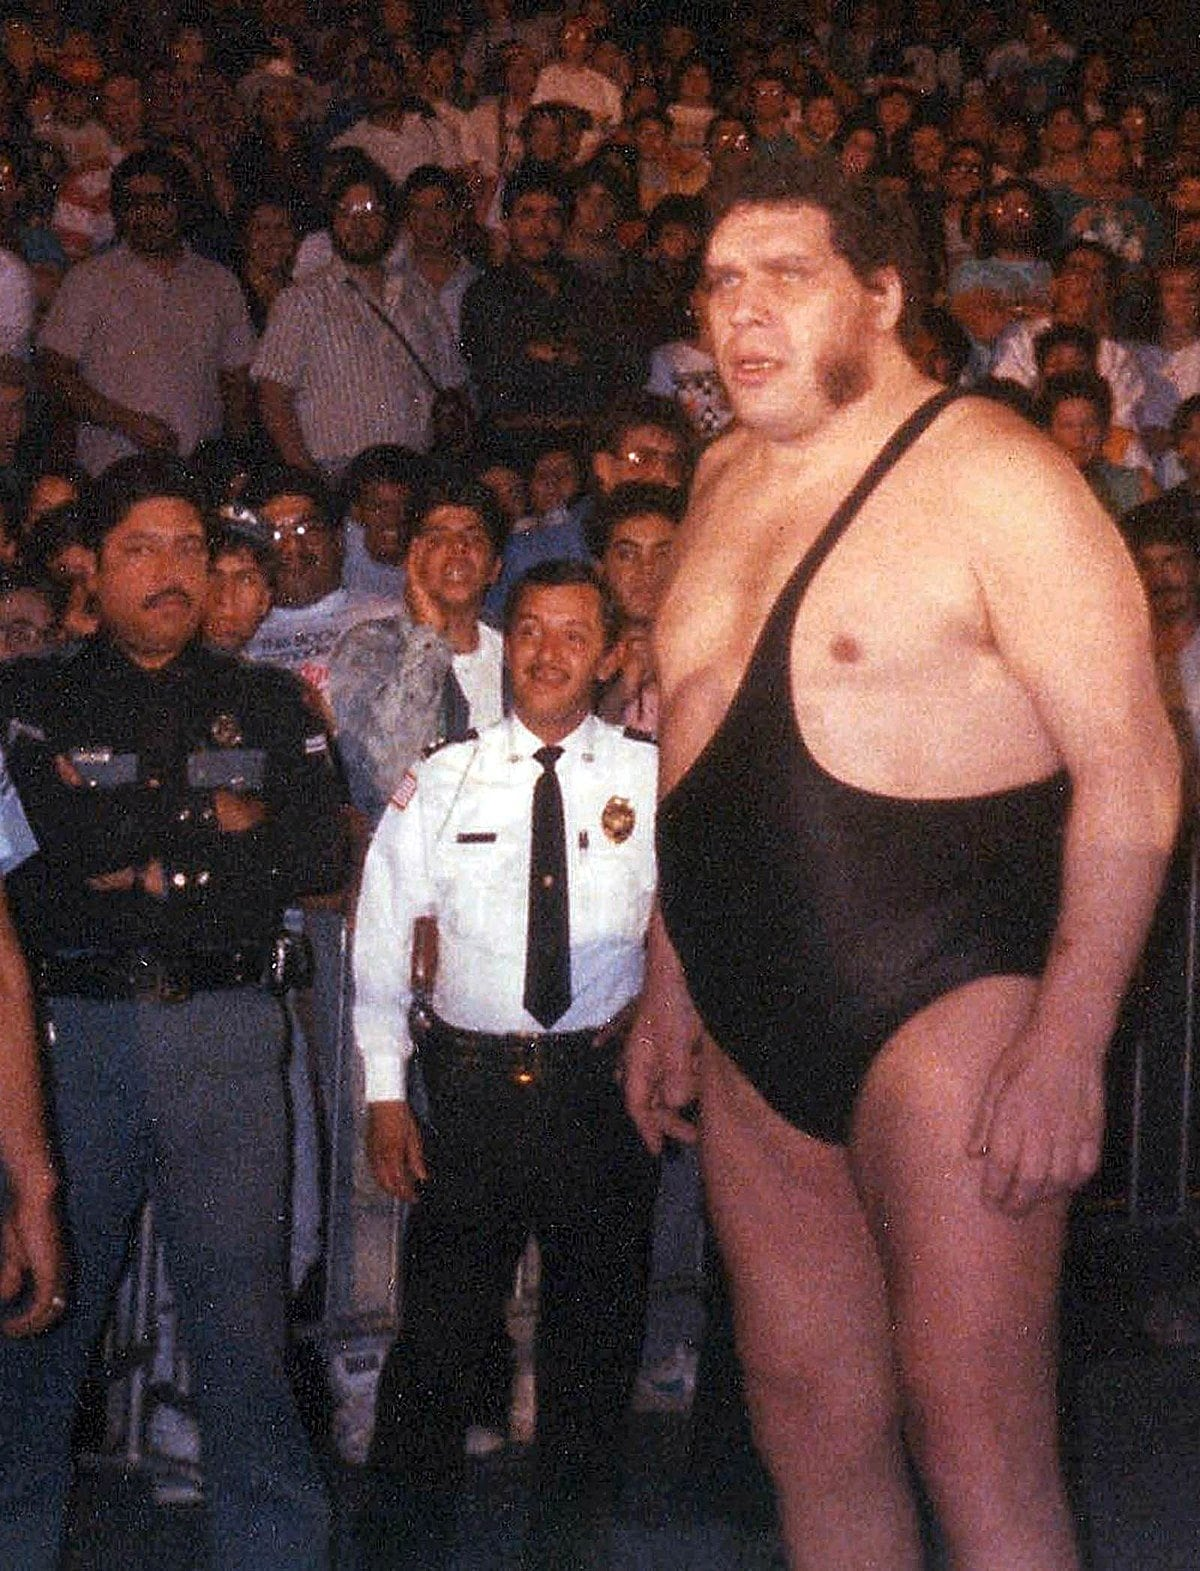 andre the giant fans superstar fifteen years andre roussimoff wrestling wrestler wwf world wide wrestling federation